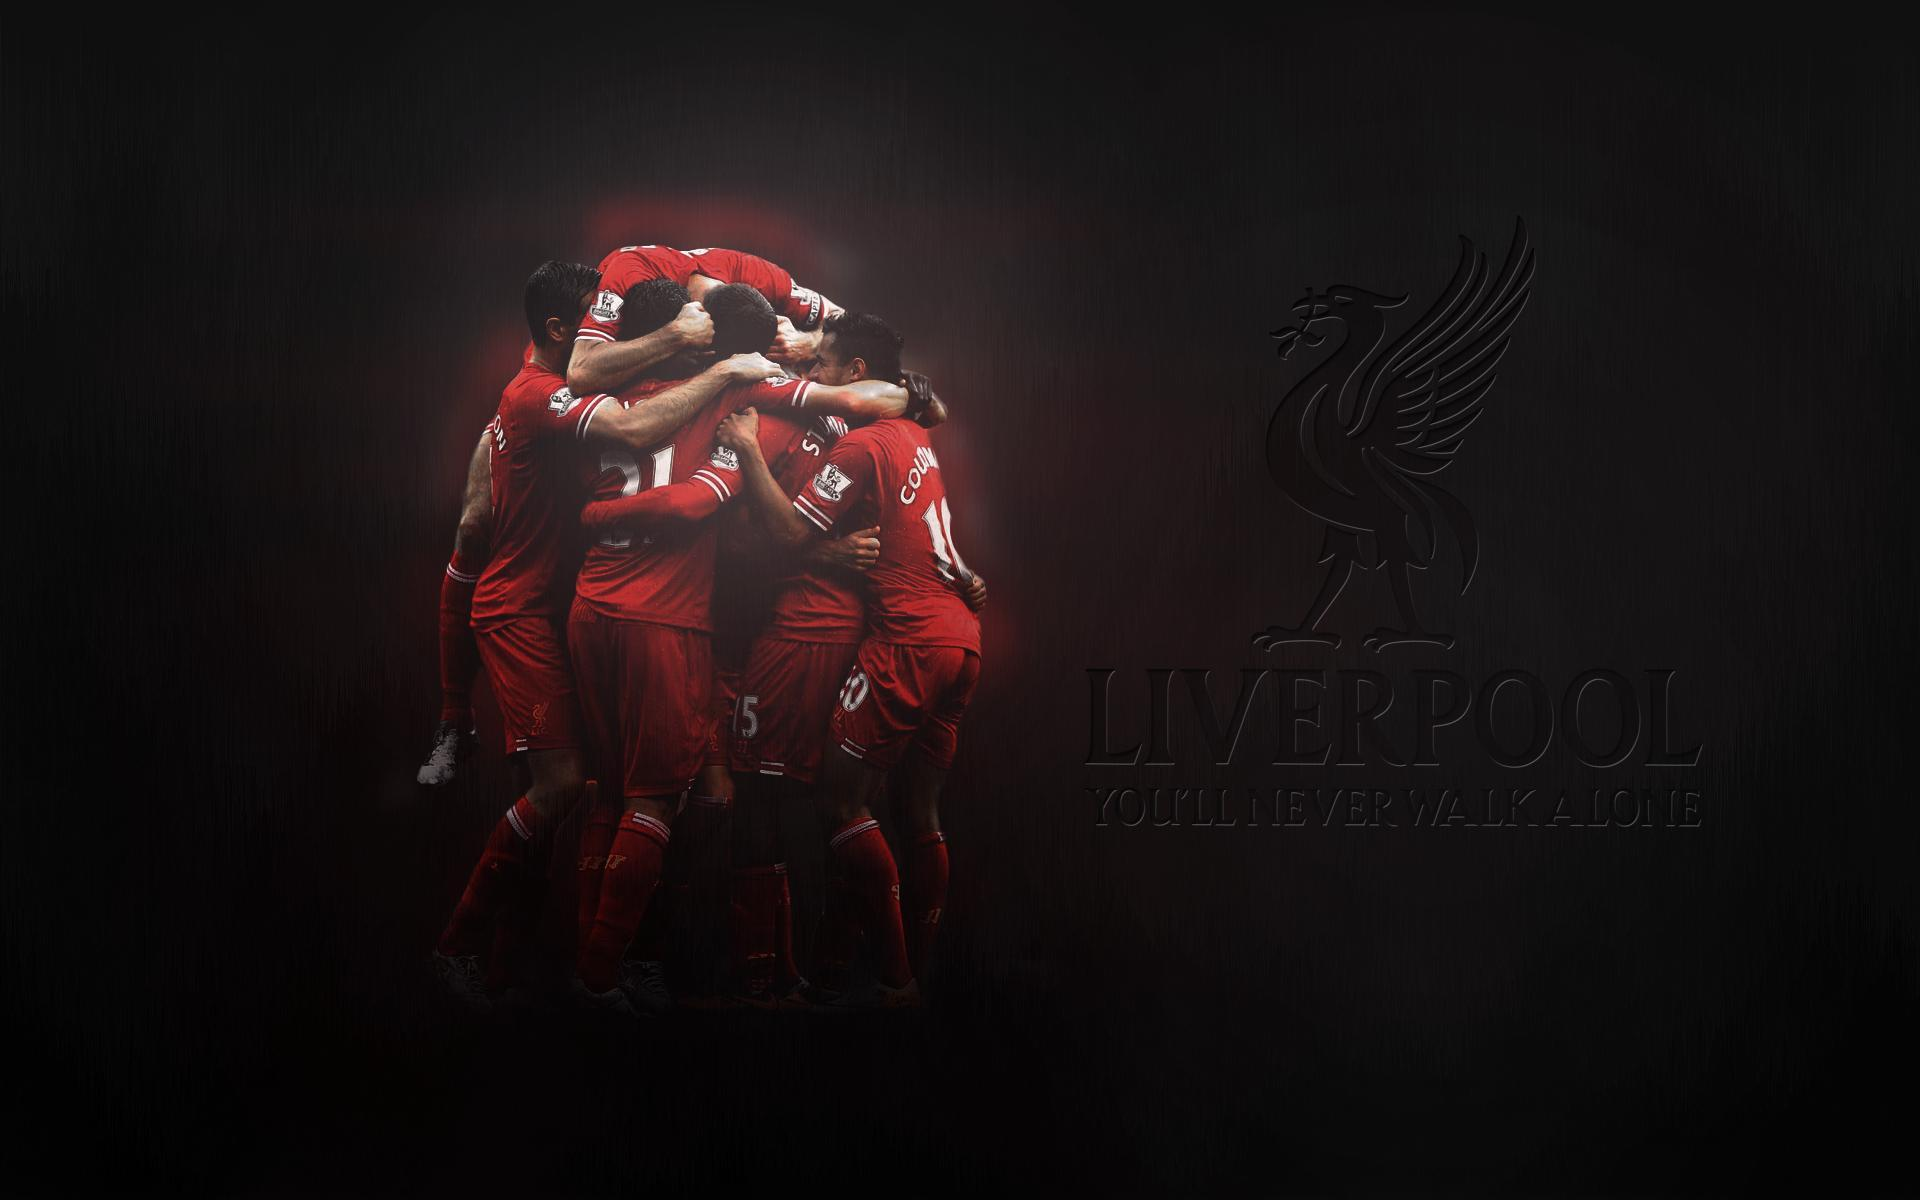 liverpool wallpapers for pc - photo #38